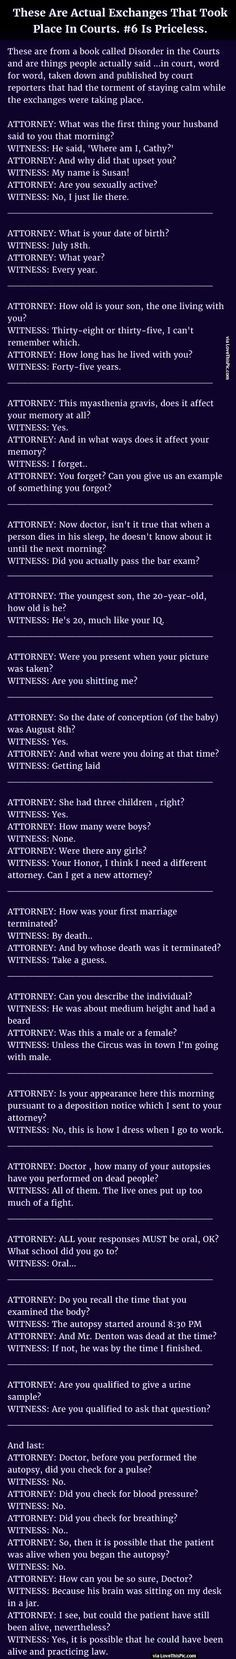 These Are Actual Exchanges That Took Place In Courts, This Is Priceless funny jokes story lol funny quote funny quotes funny sayings joke hilarious humor stories funny jokes best jokes ever best jokes